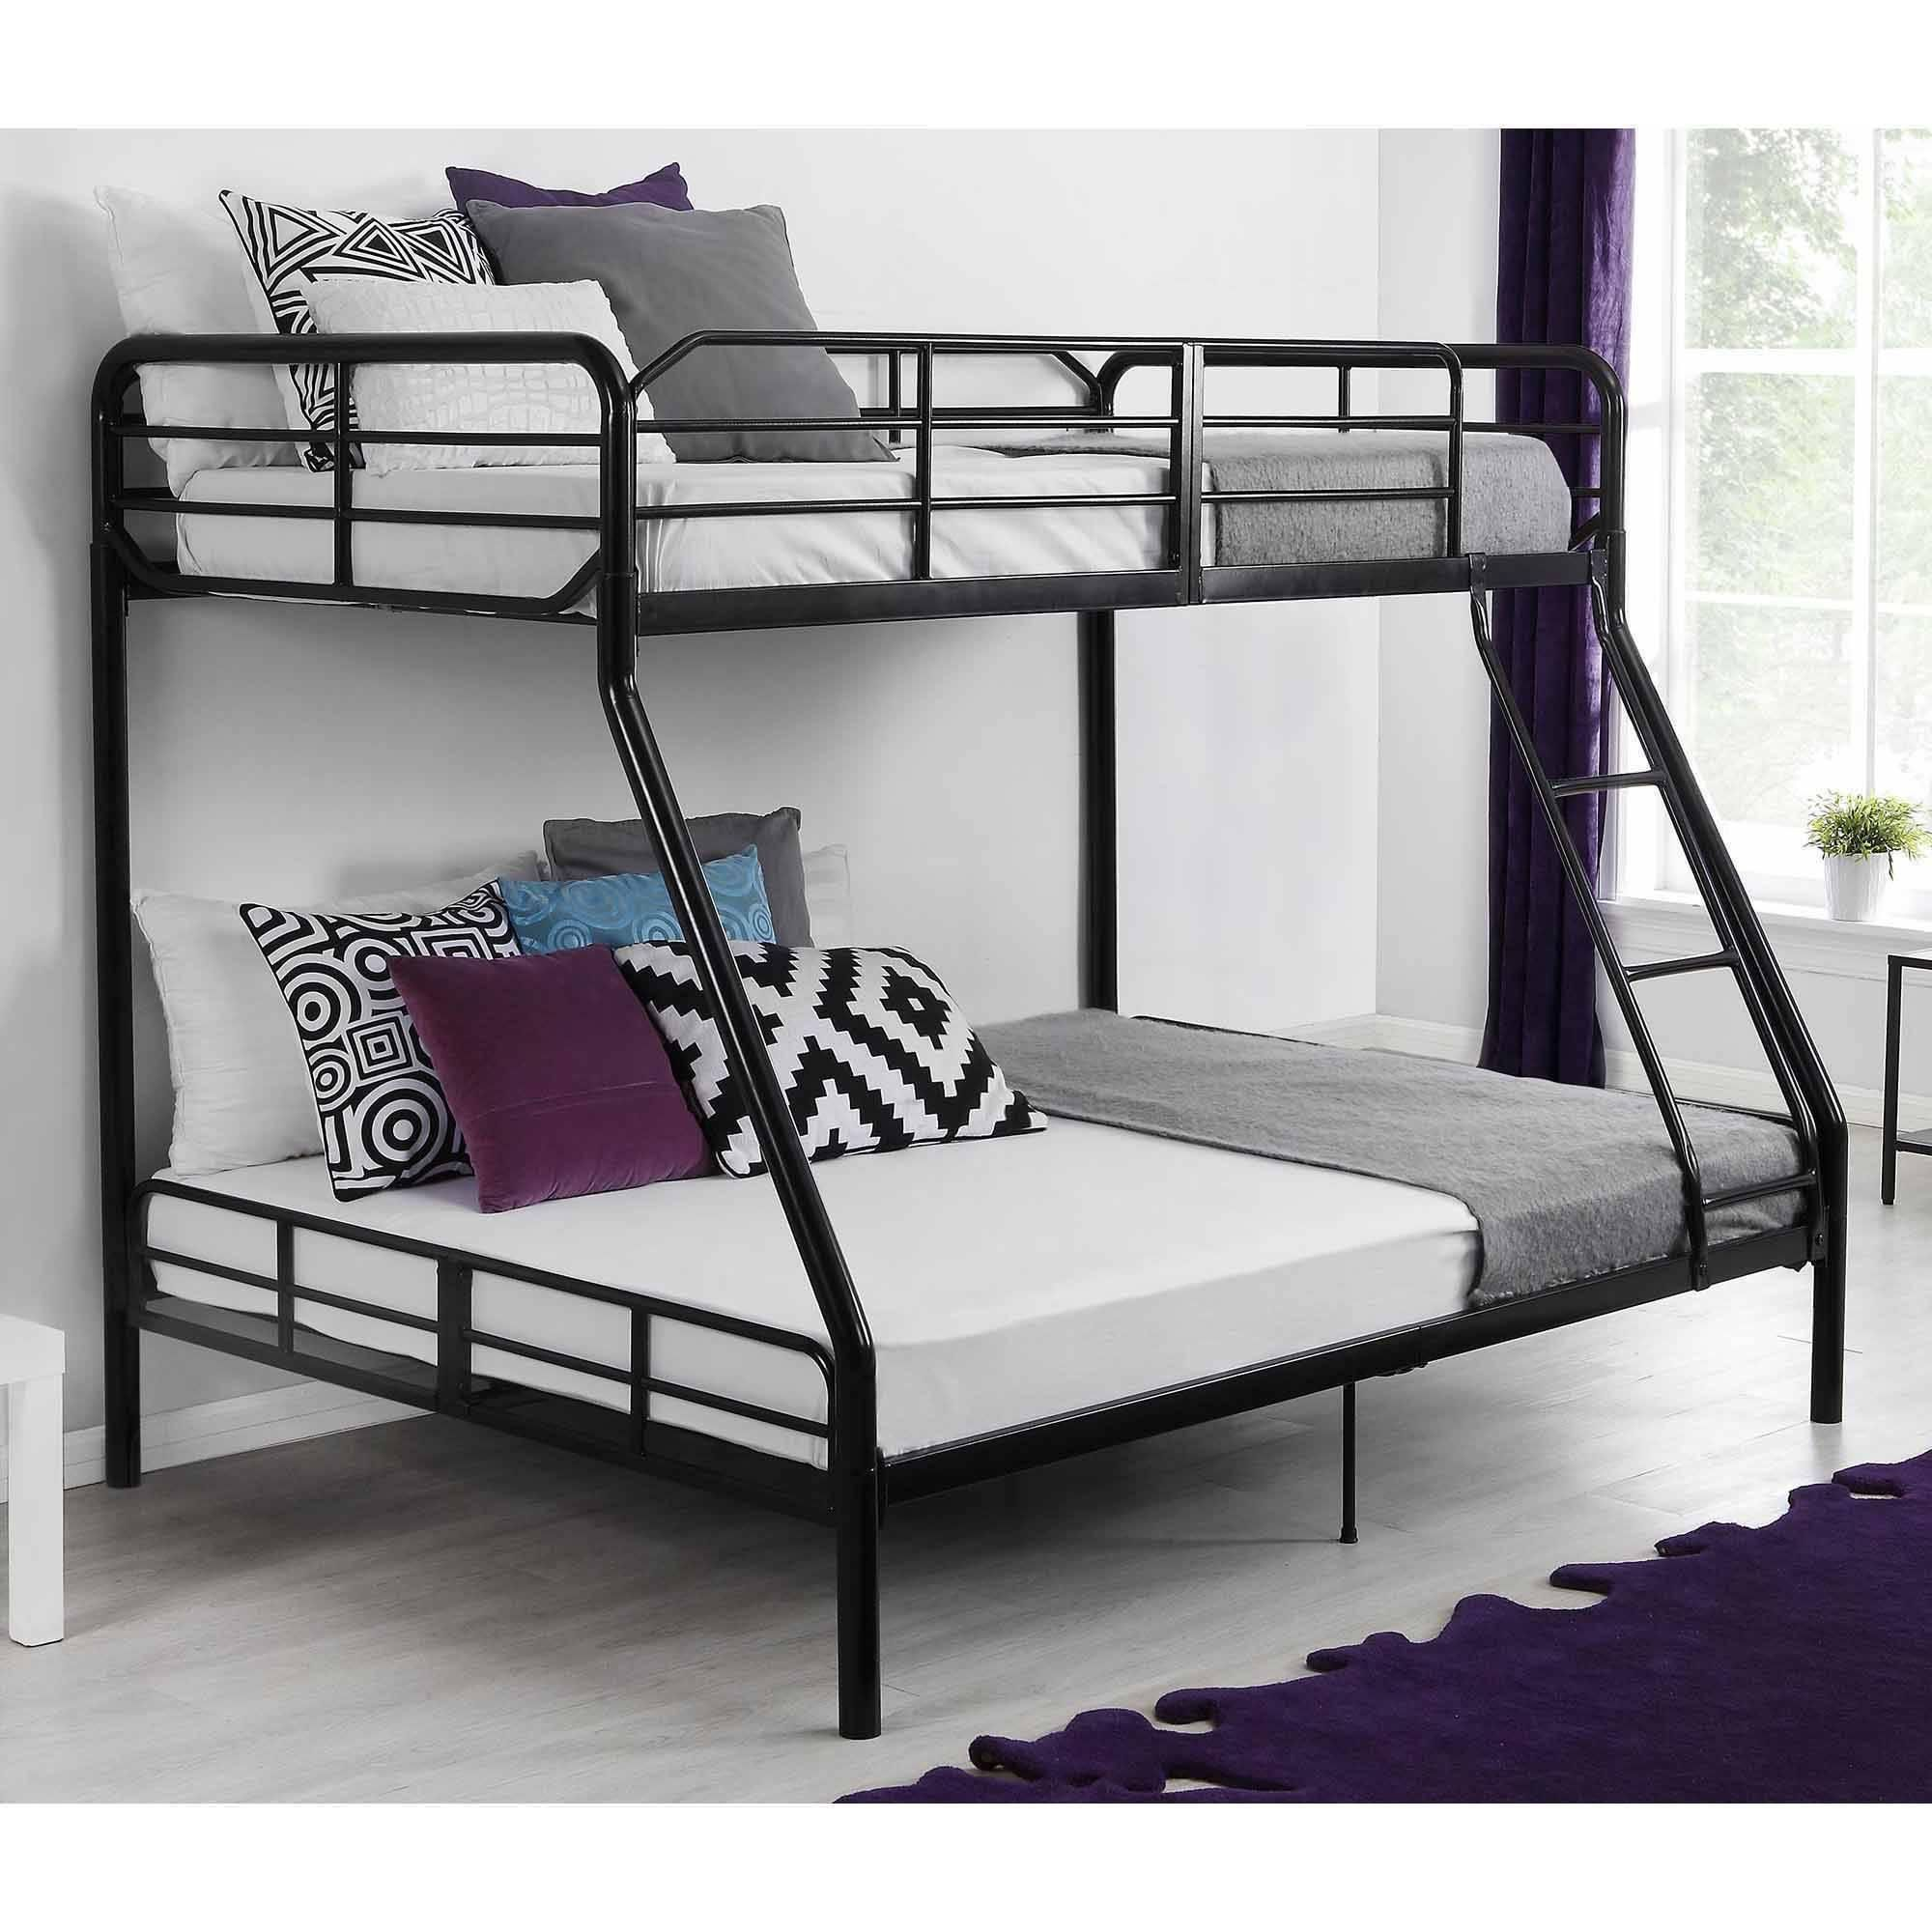 pin by nina d on bunk beds pinterest bunk bed and bedrooms